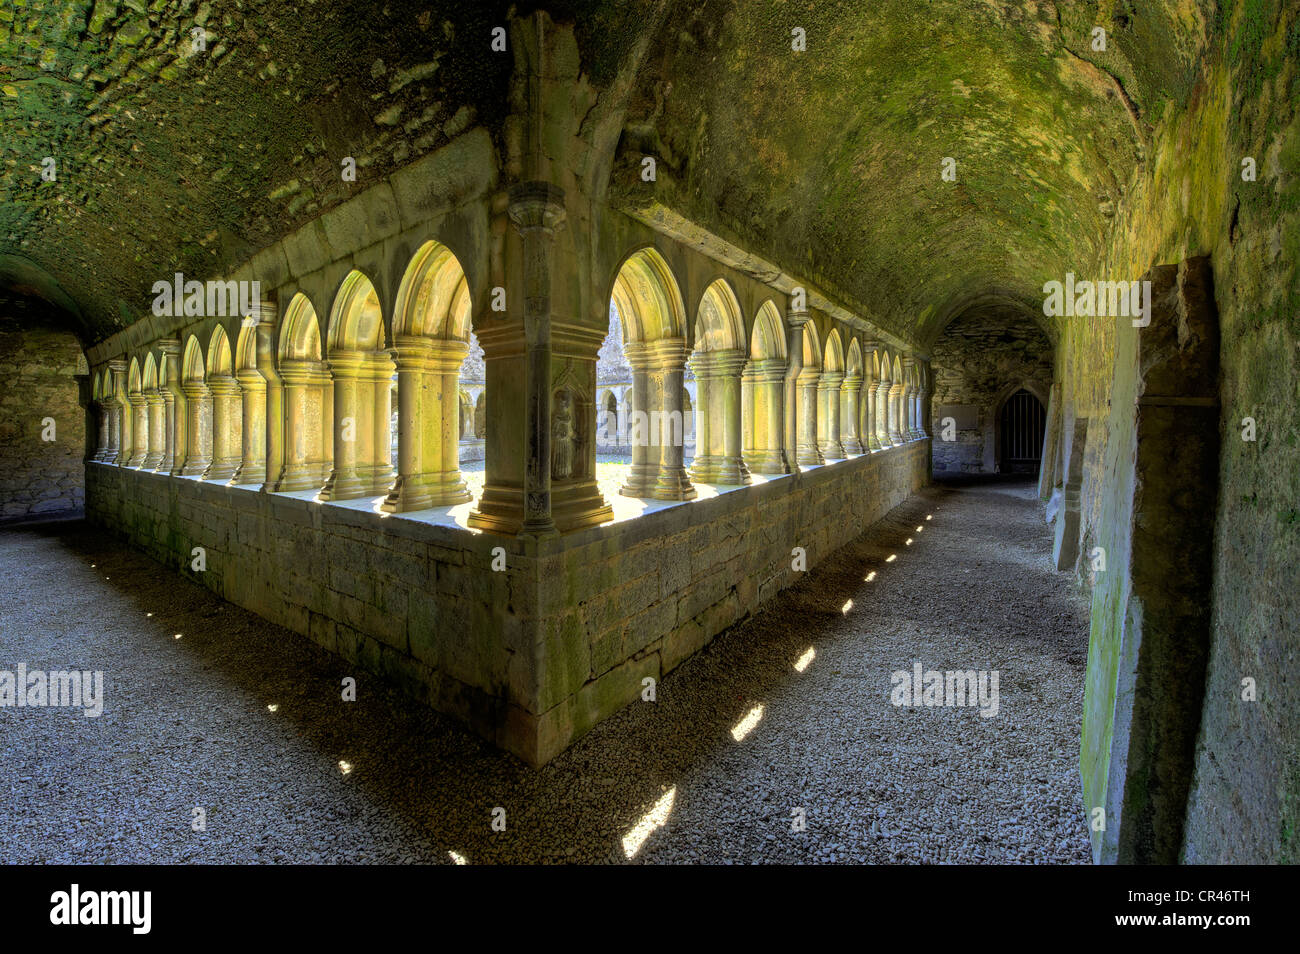 Cloister, ruins of the former Franciscan monastery, Askeaton, County Limerick, Ireland, Europe - Stock Image